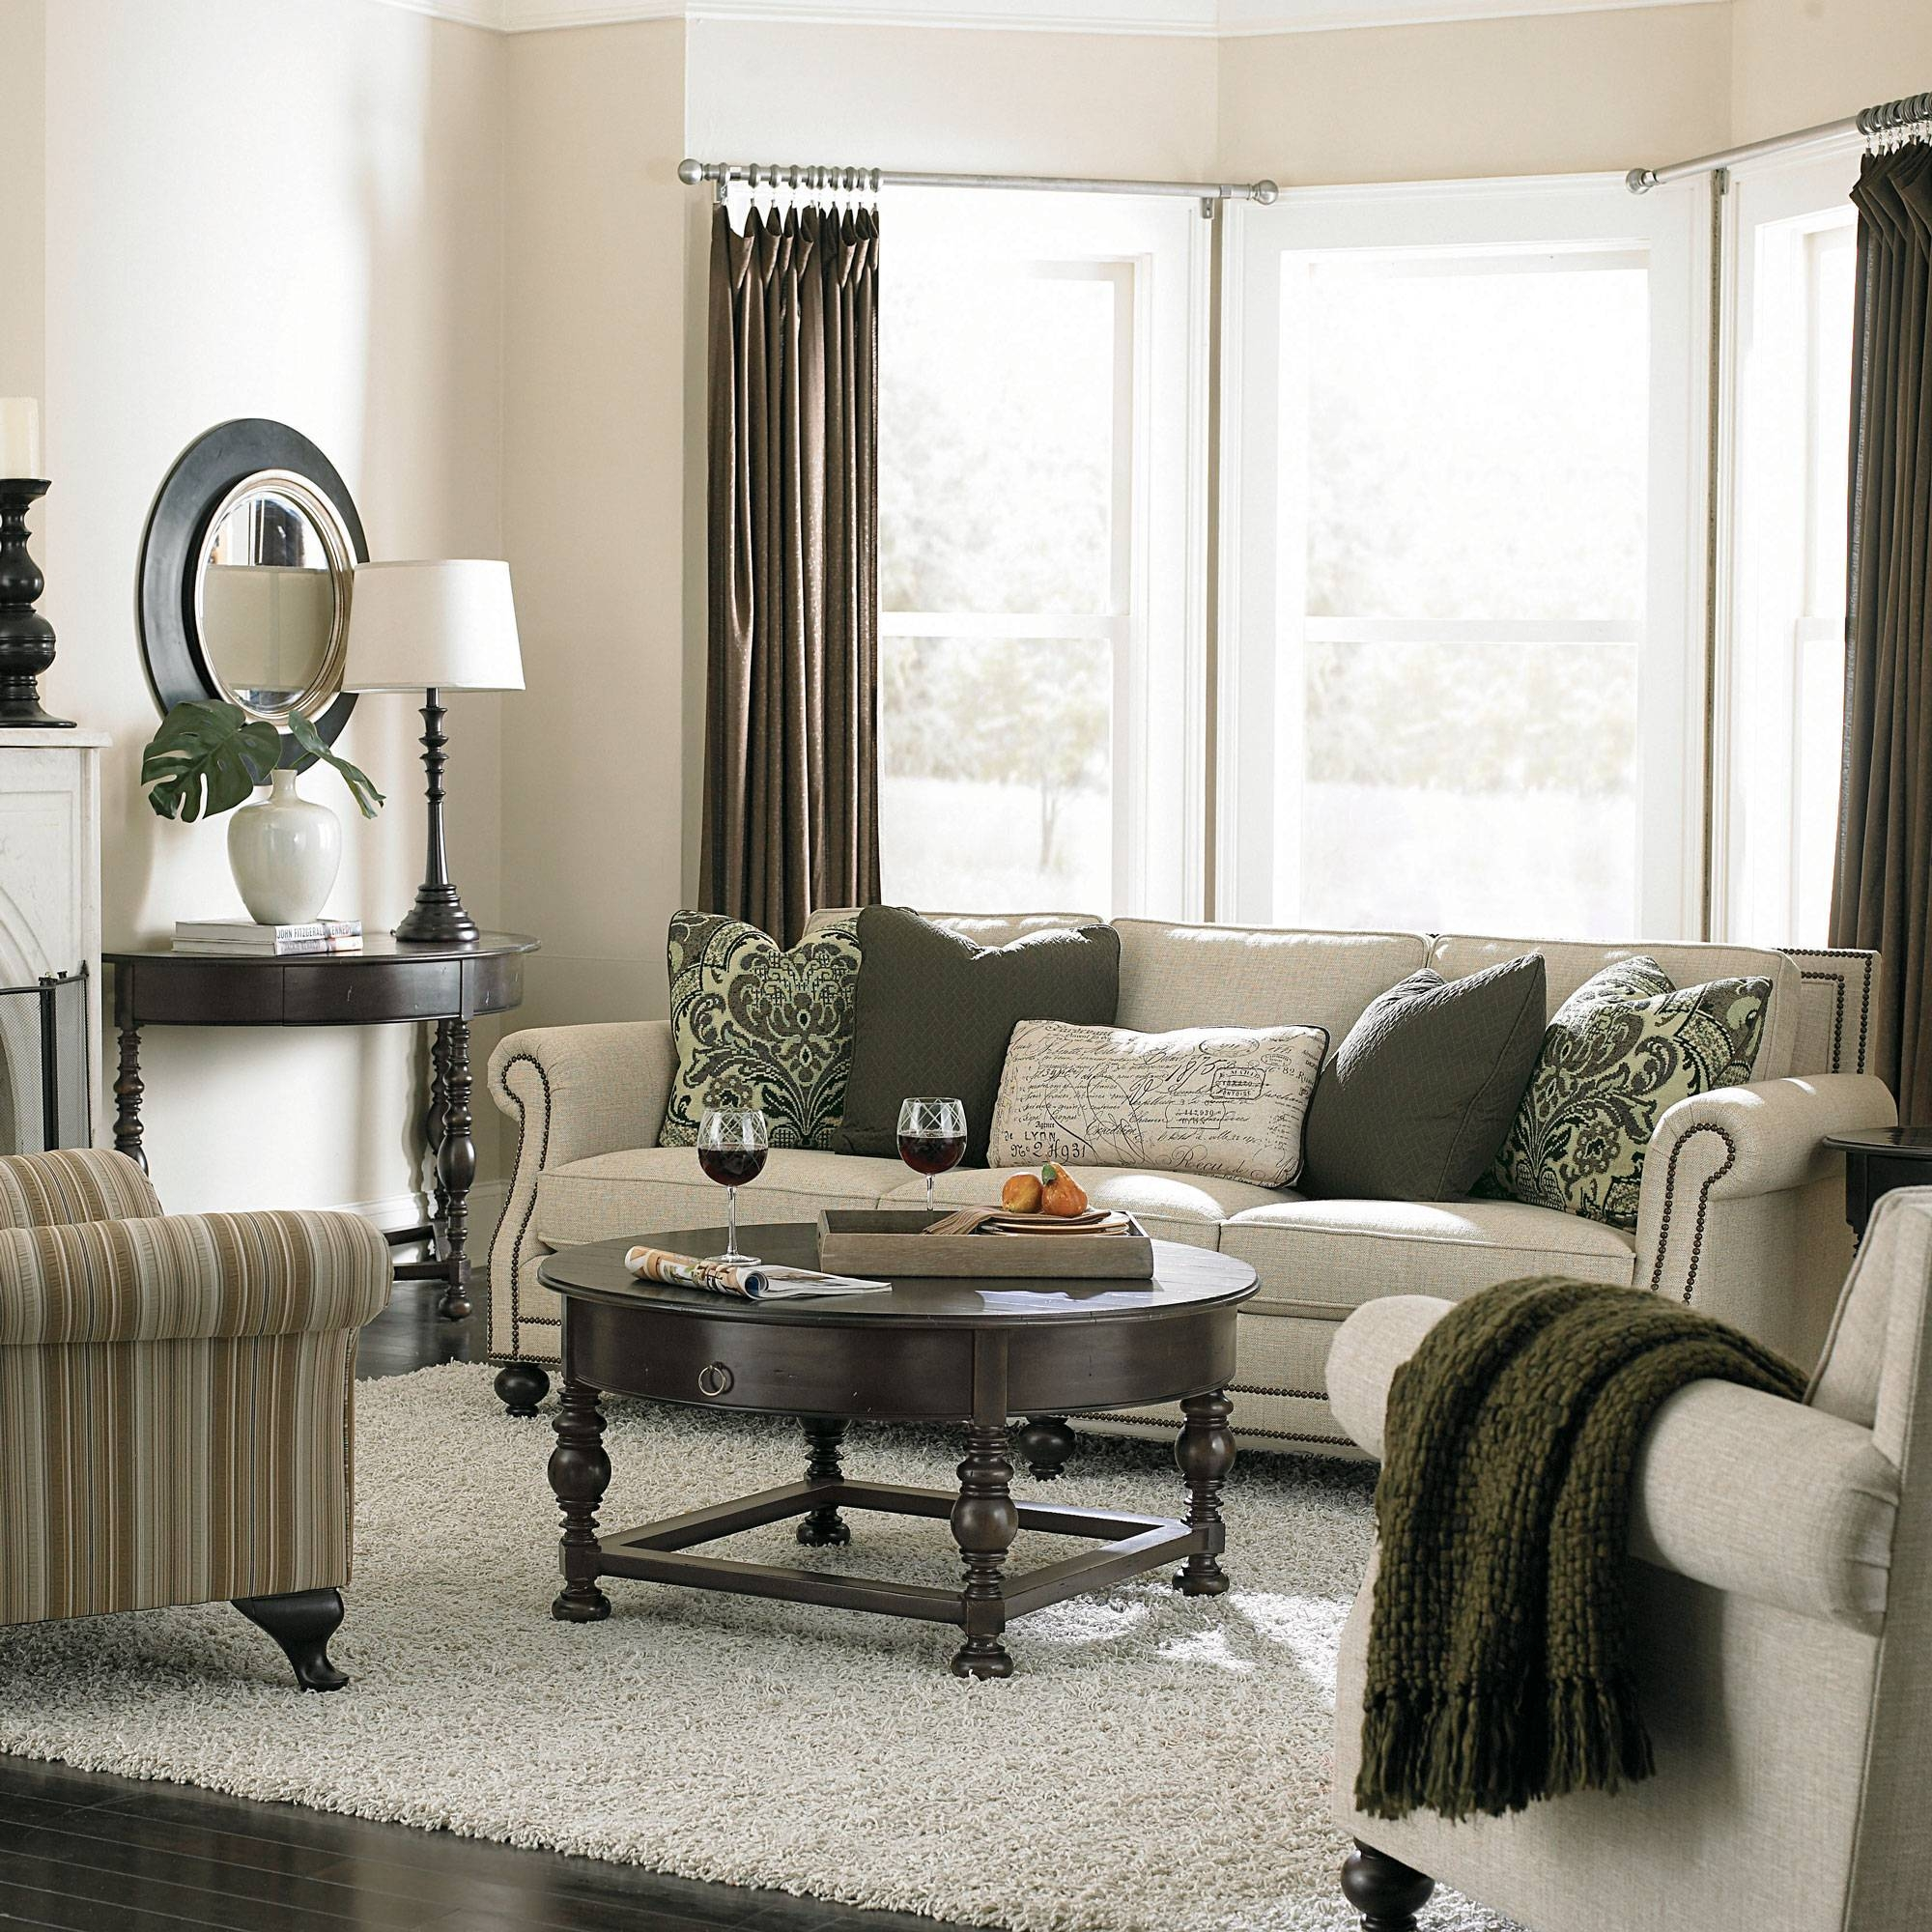 Bernhardt Furniture Brae Sofa | Centerfieldbar within Bernhardt Brae Sofas (Image 6 of 15)